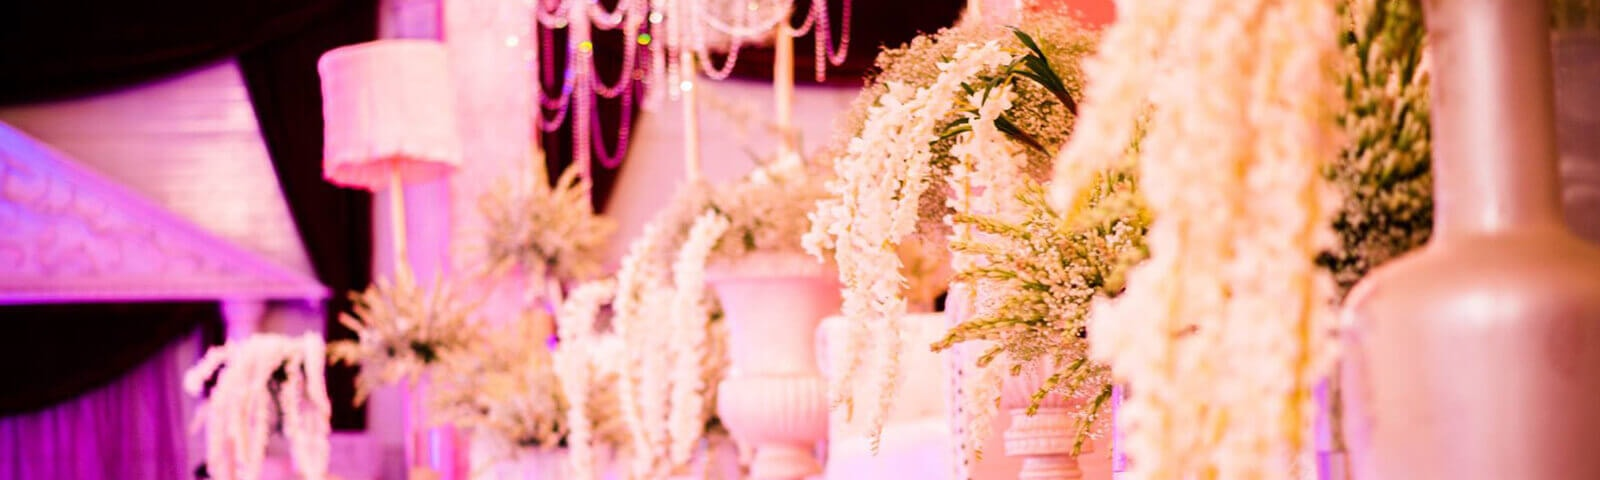 Wedding Planner in Bangalore - 3Production Weddings